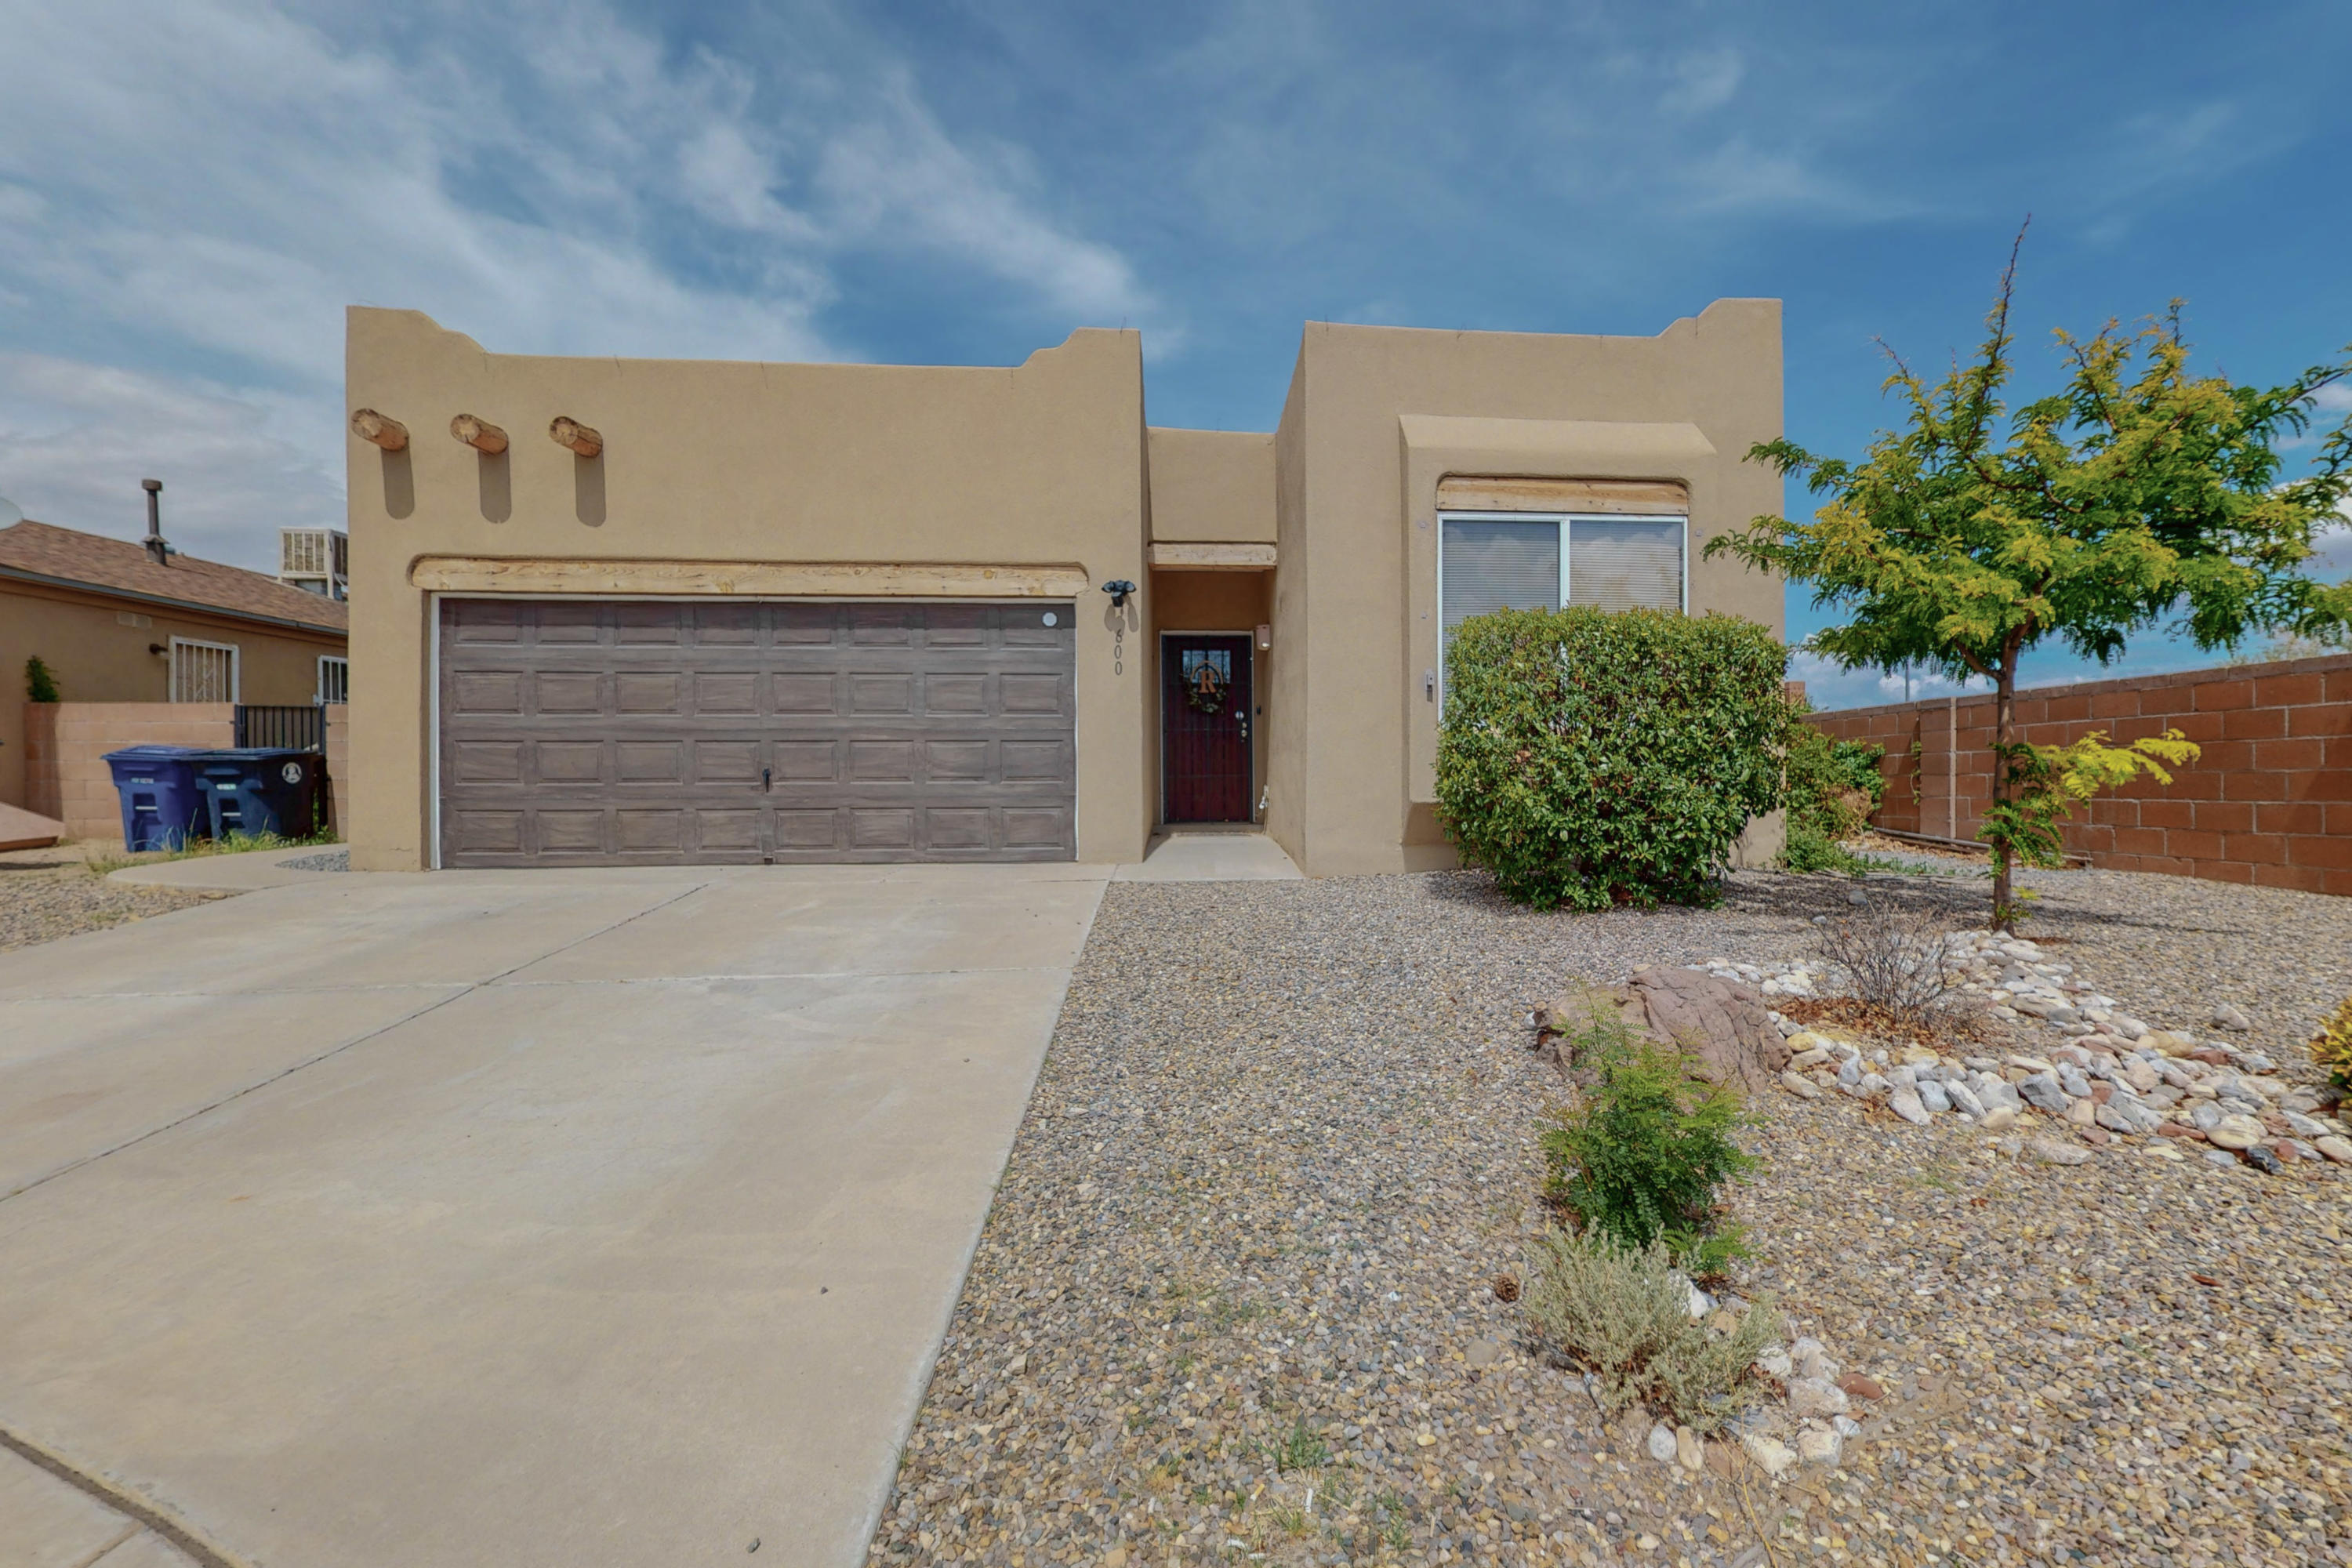 Welcome to this beautiful, single story home located at the end of a cul-de-sac! You'll love this perfectly flowing floor plan! The kitchen features stainless steel appliances, there is a breakfast nook and a living/dining area that is perfect for entertaining! Large master suite with a soak tub and separate shower. Refrigerated air and a low maintenance yard. Don't miss your opportunity to call this lovingly, maintained home your own!